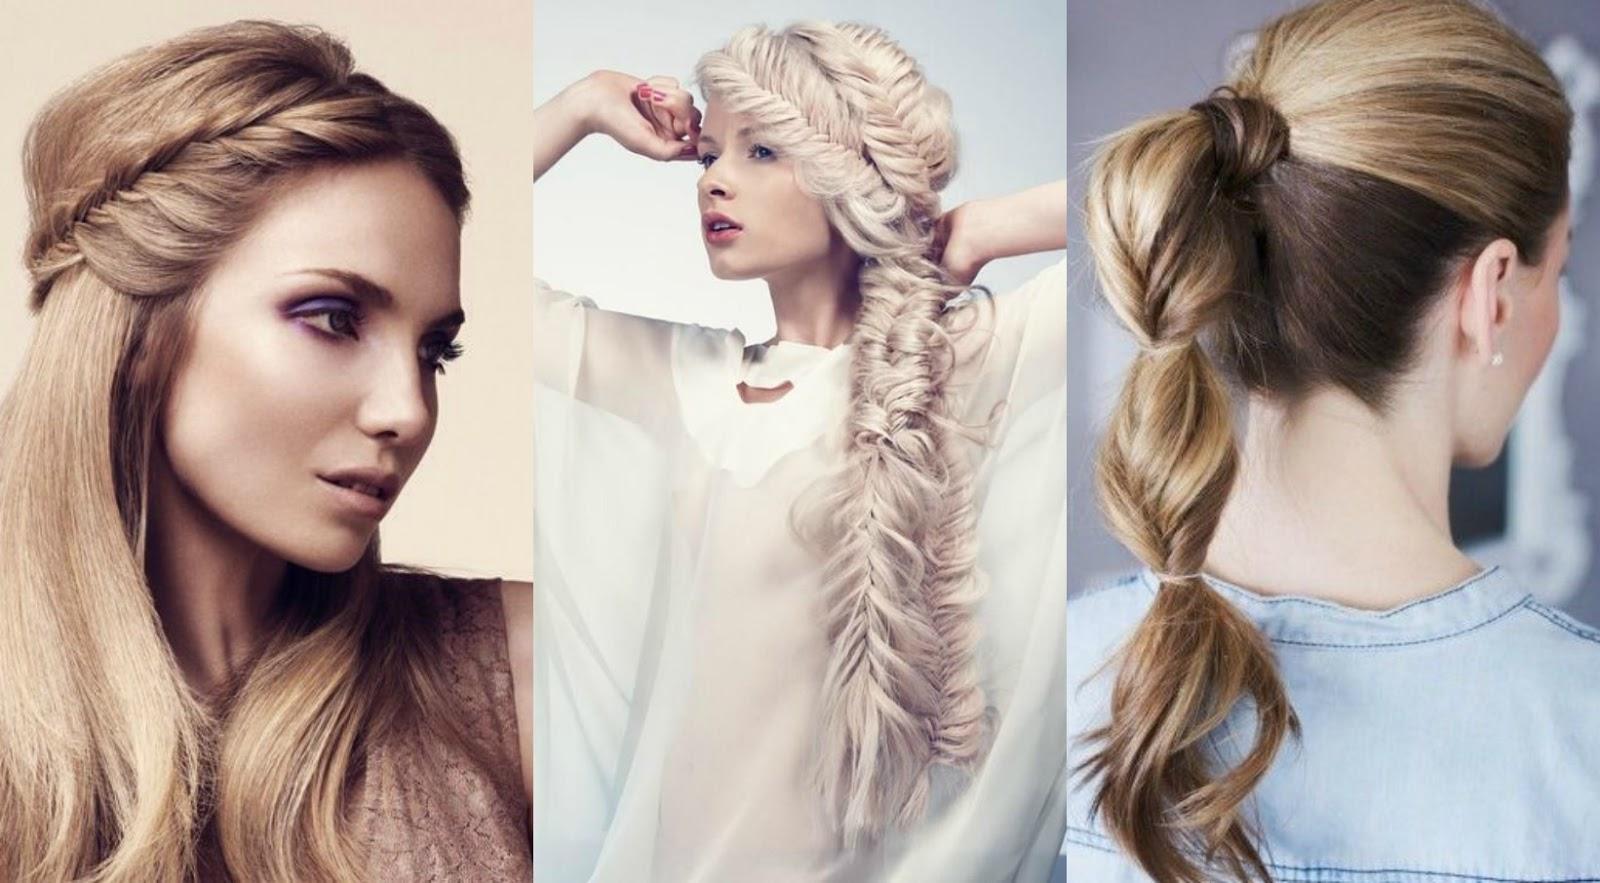 How to Change Up Your Hairstyle How to Change Up Your Hairstyle new photo